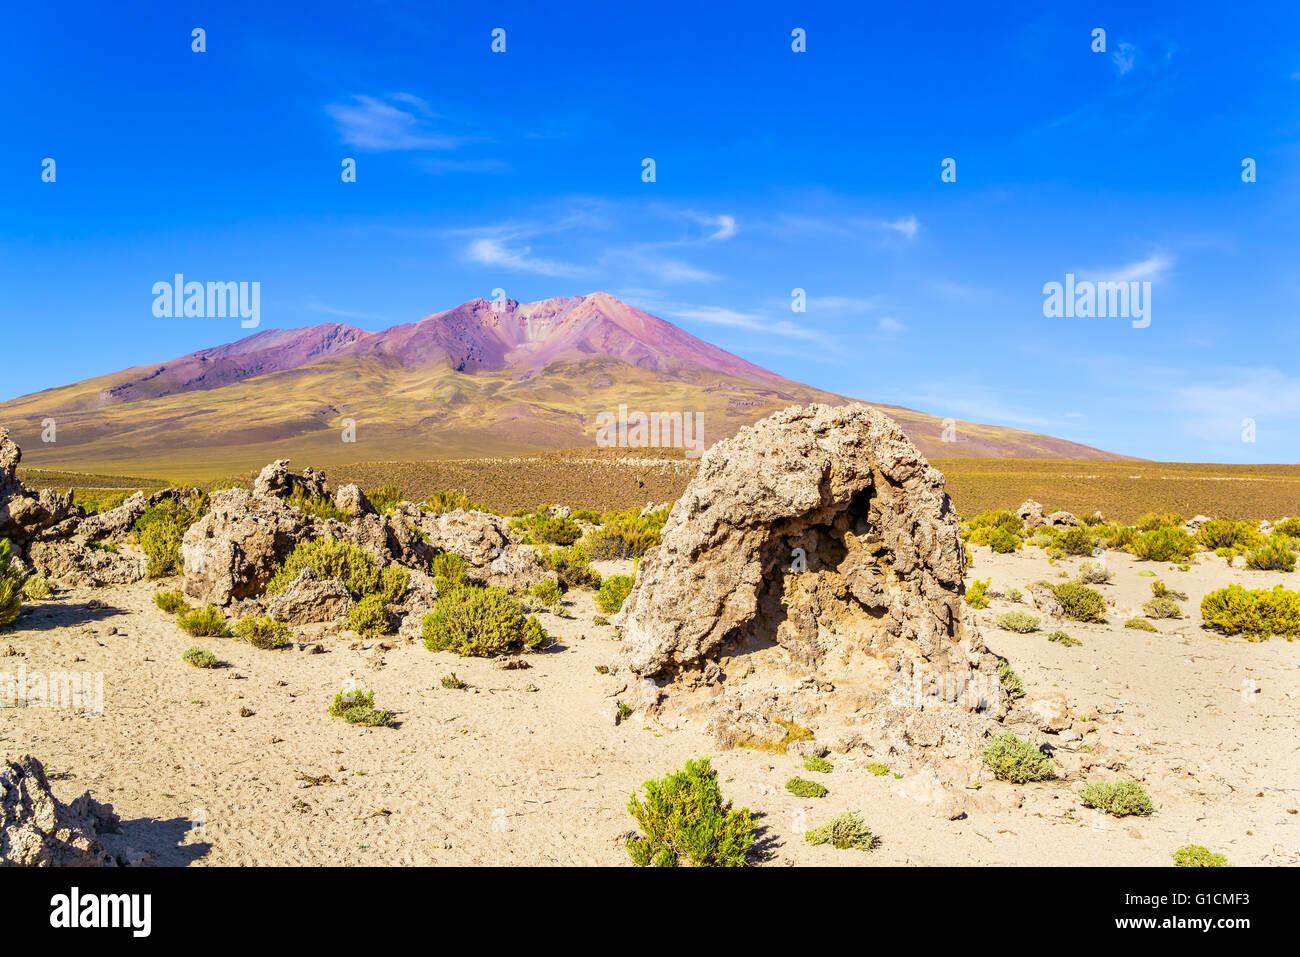 View of dormant volcano and desert in National Park, Uyuni, Bolivia - Stock Image